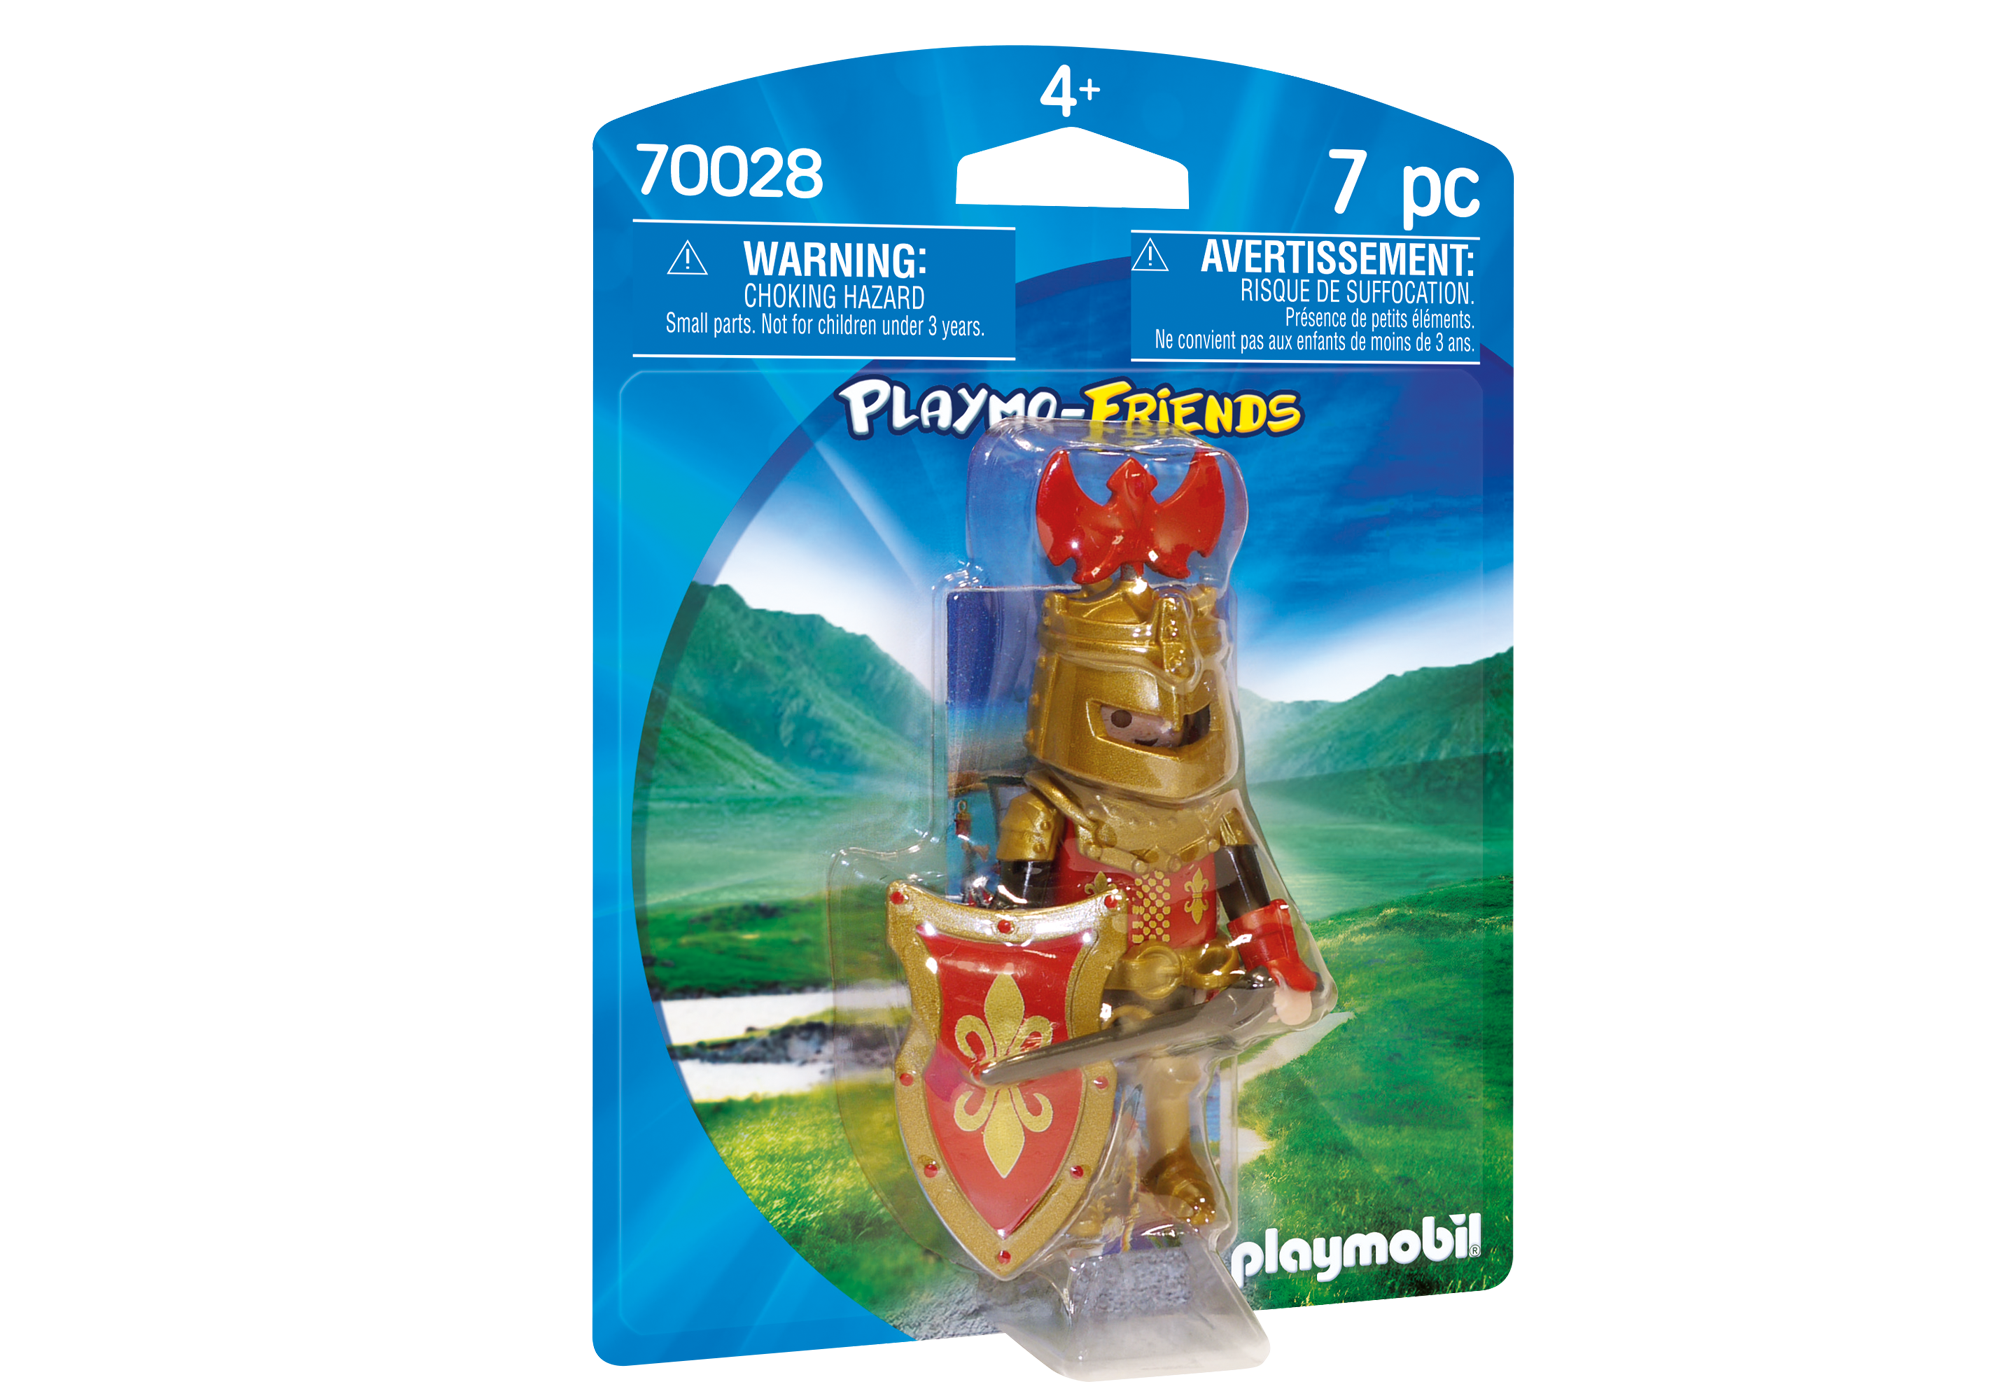 http://media.playmobil.com/i/playmobil/70028_product_box_front